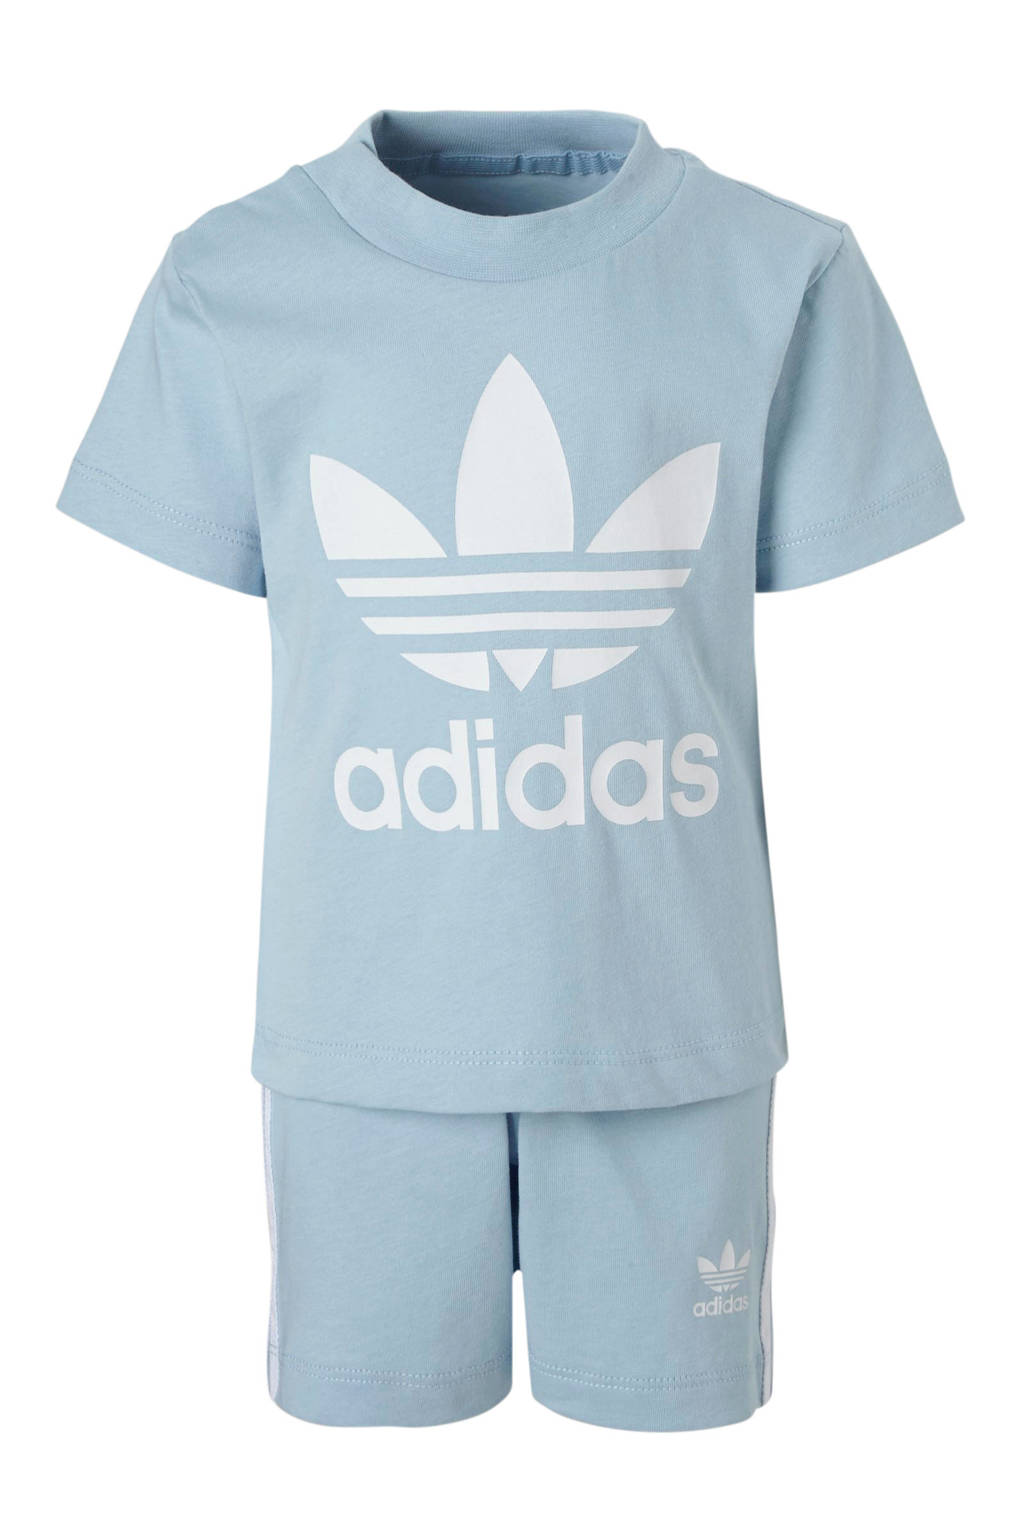 adidas originals shirt + short lichtblauw, Lichtblauw/wit